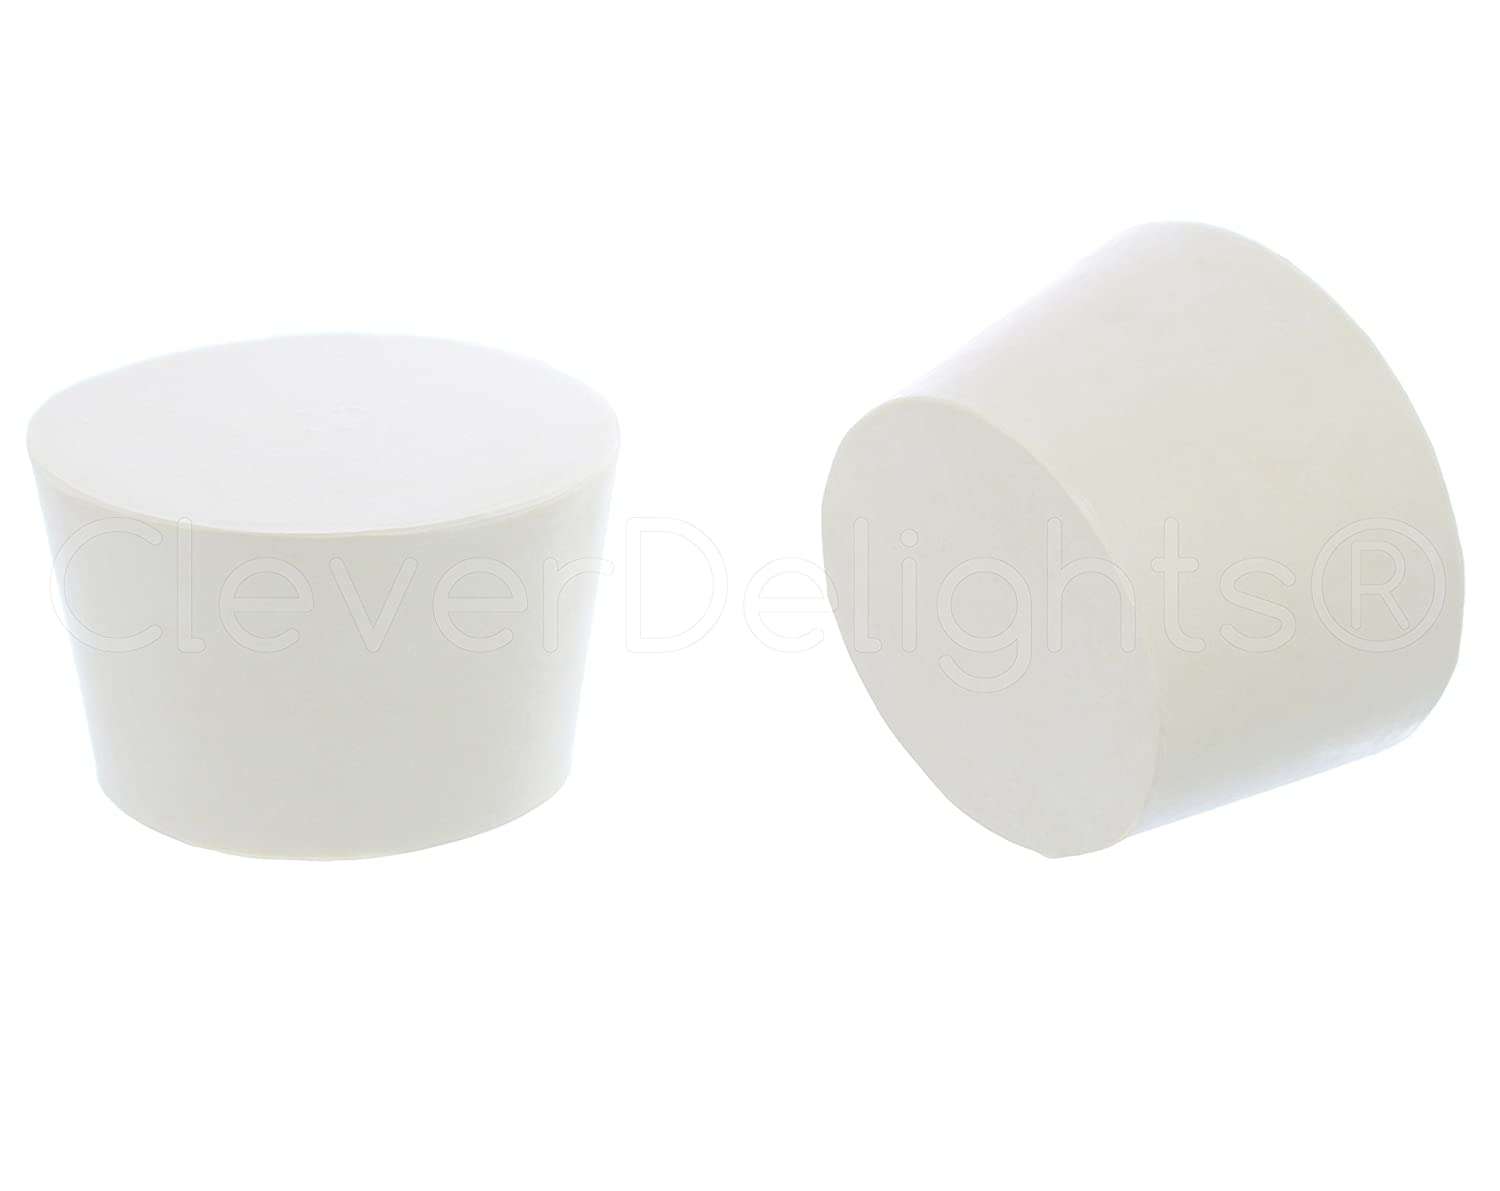 3 Pack - CleverDelights Solid Rubber Stoppers | Size 12 | 62mm x 51mm - 38mm Long - White Lab Plug #12